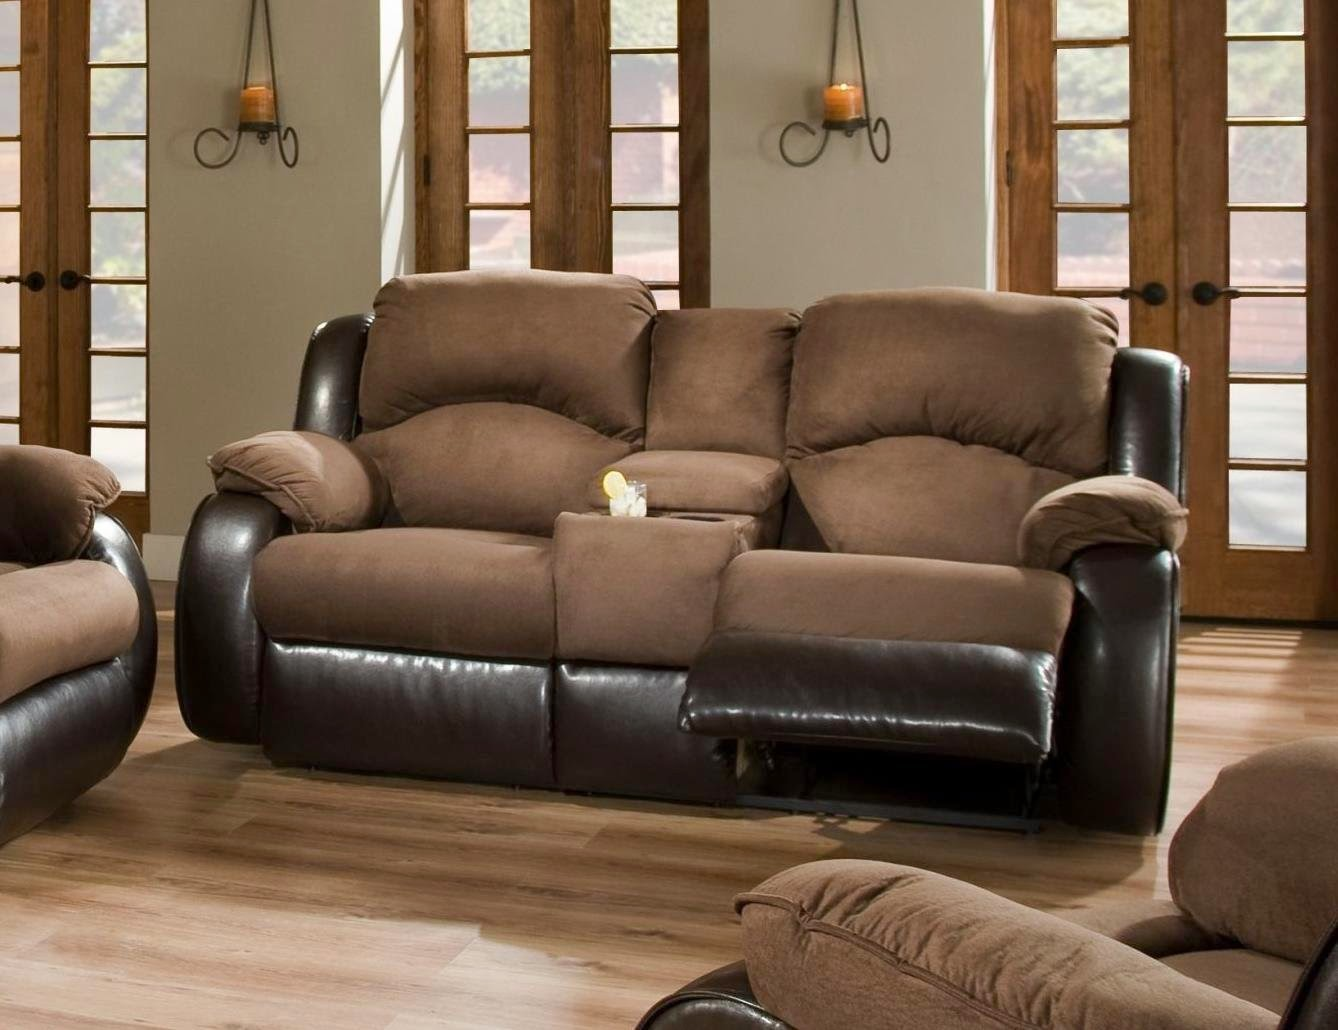 Interesting Recliner Sofa Sets Pictures Design Ideas Dievoon